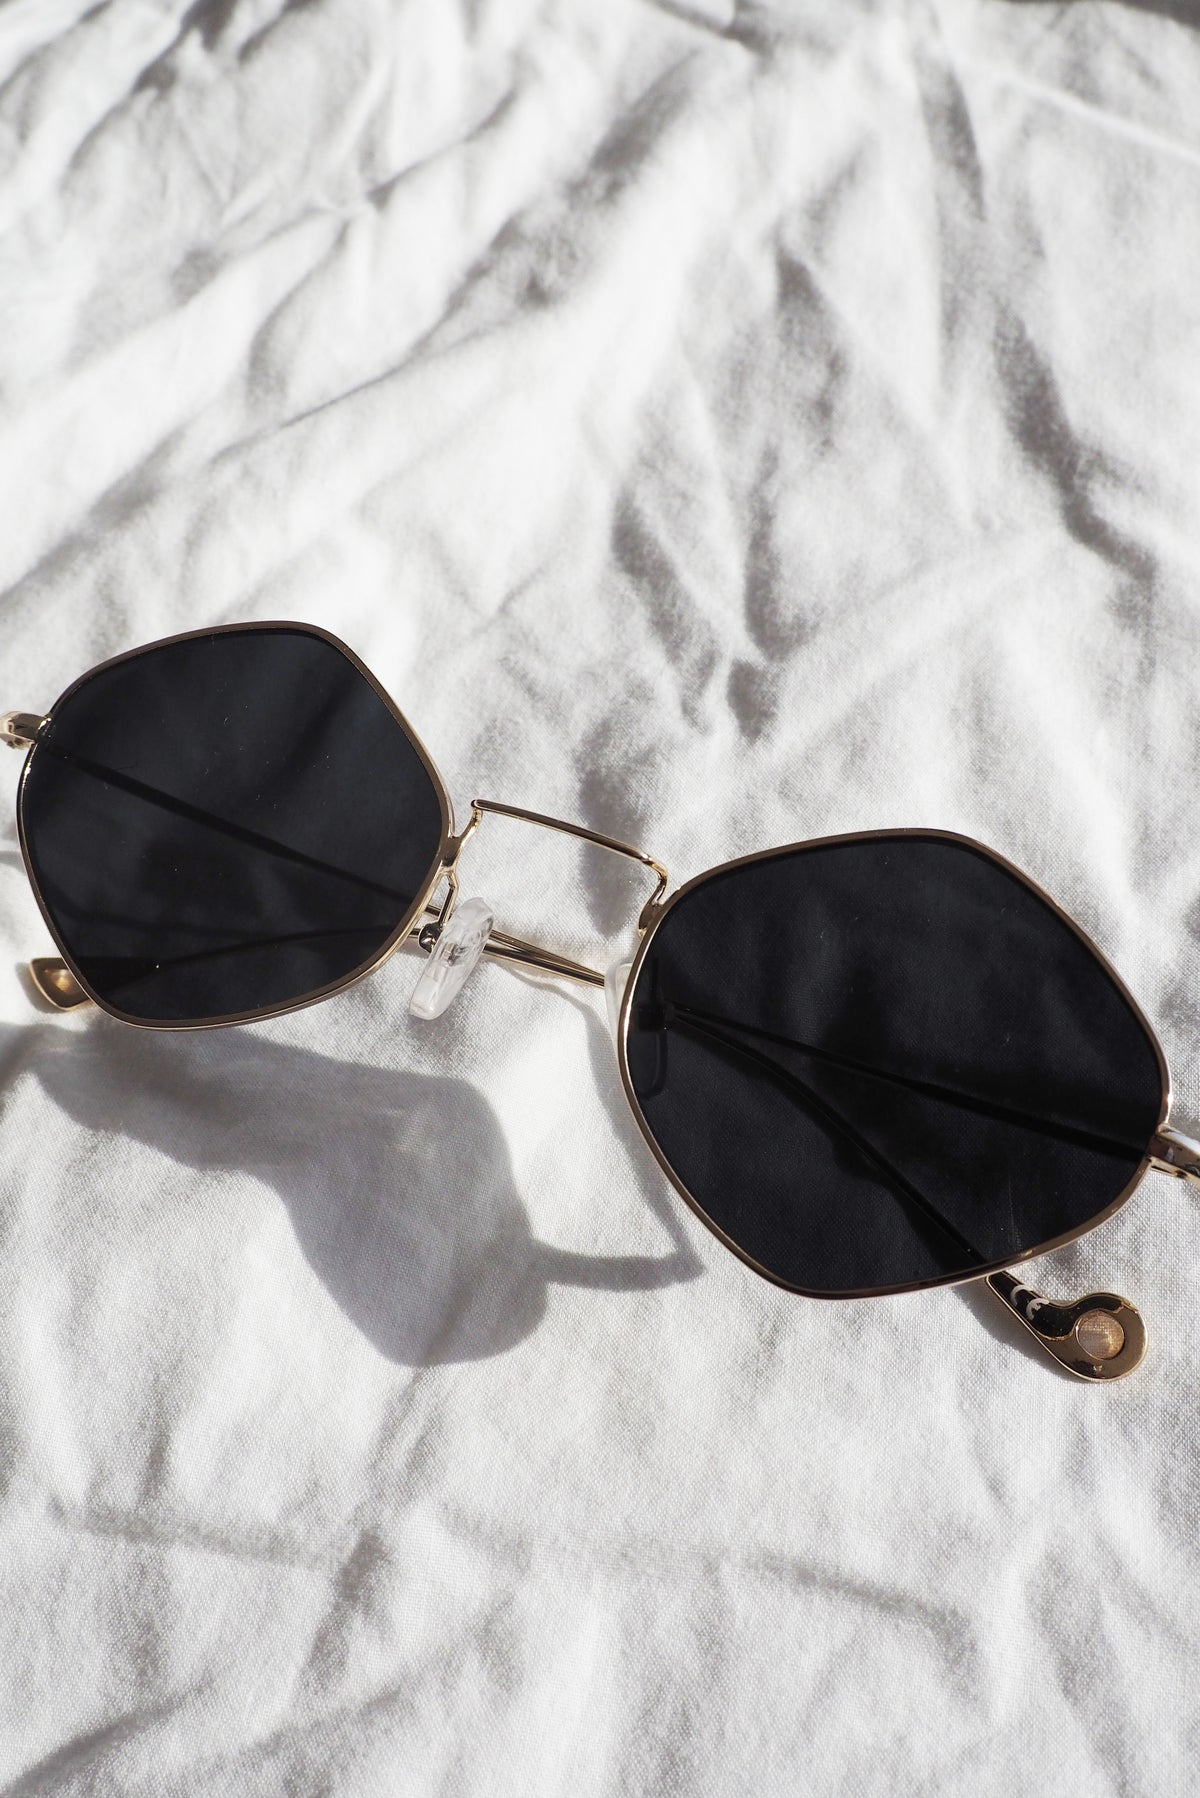 THE GAME CHANGER SUNNIES - You.